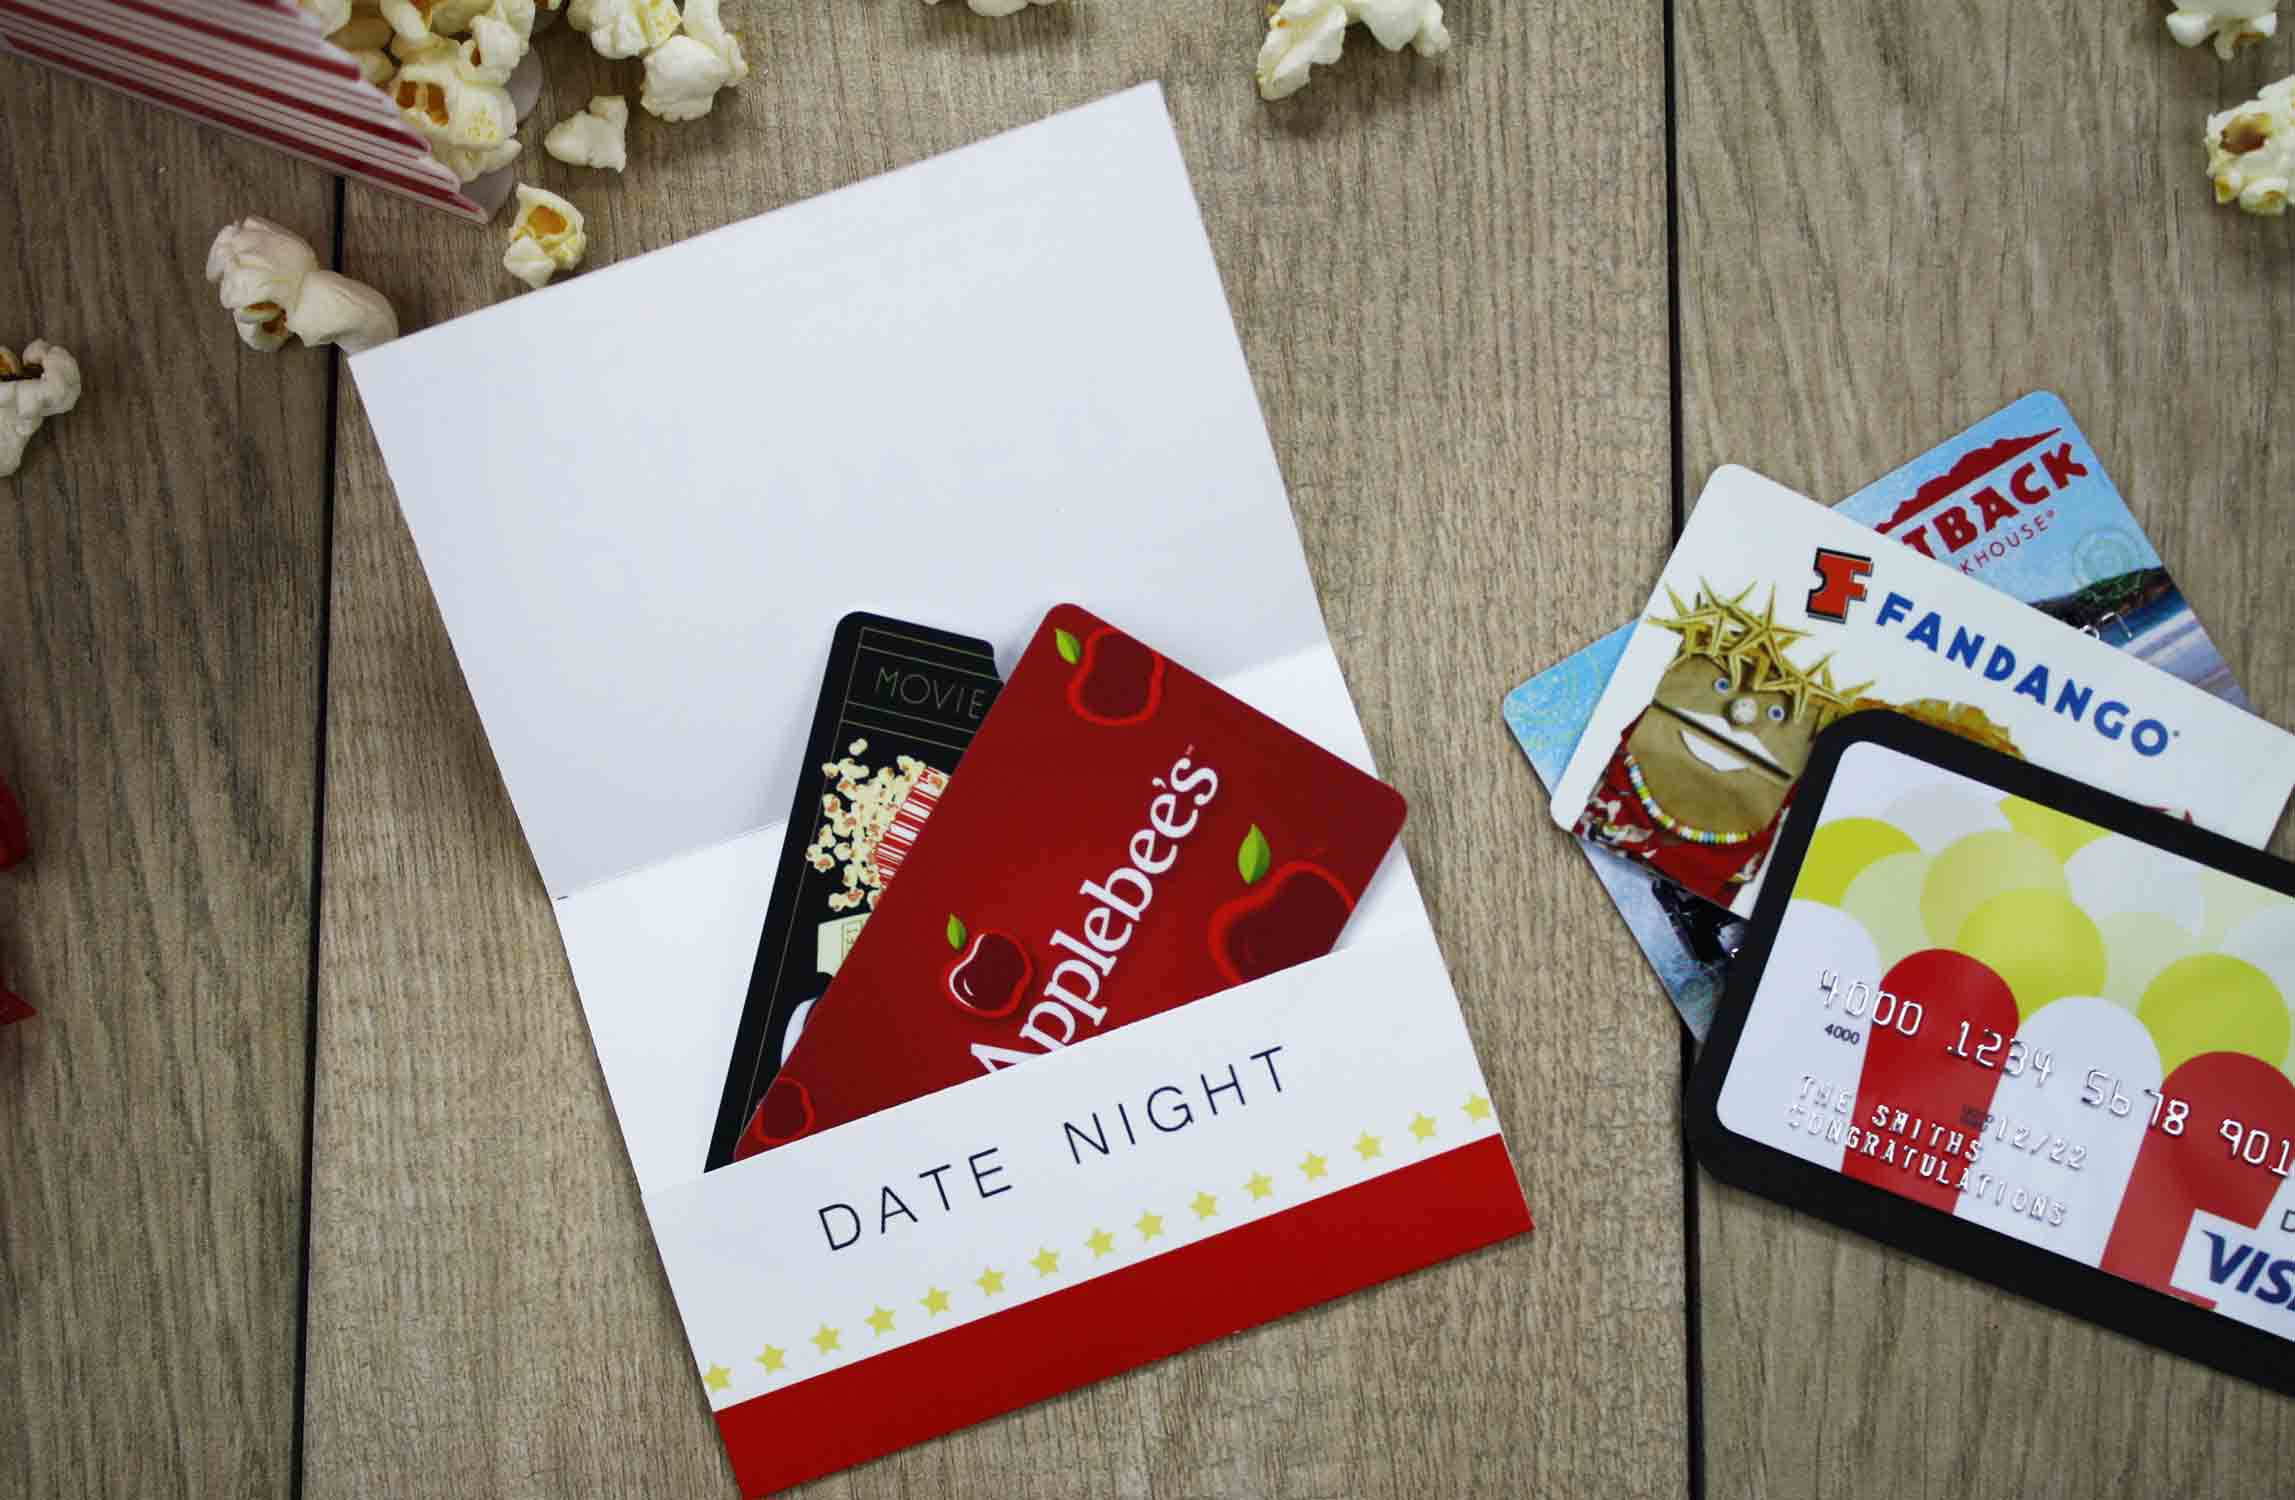 Free printable give date night for a wedding gift gcg folded gift card holder with cards in it negle